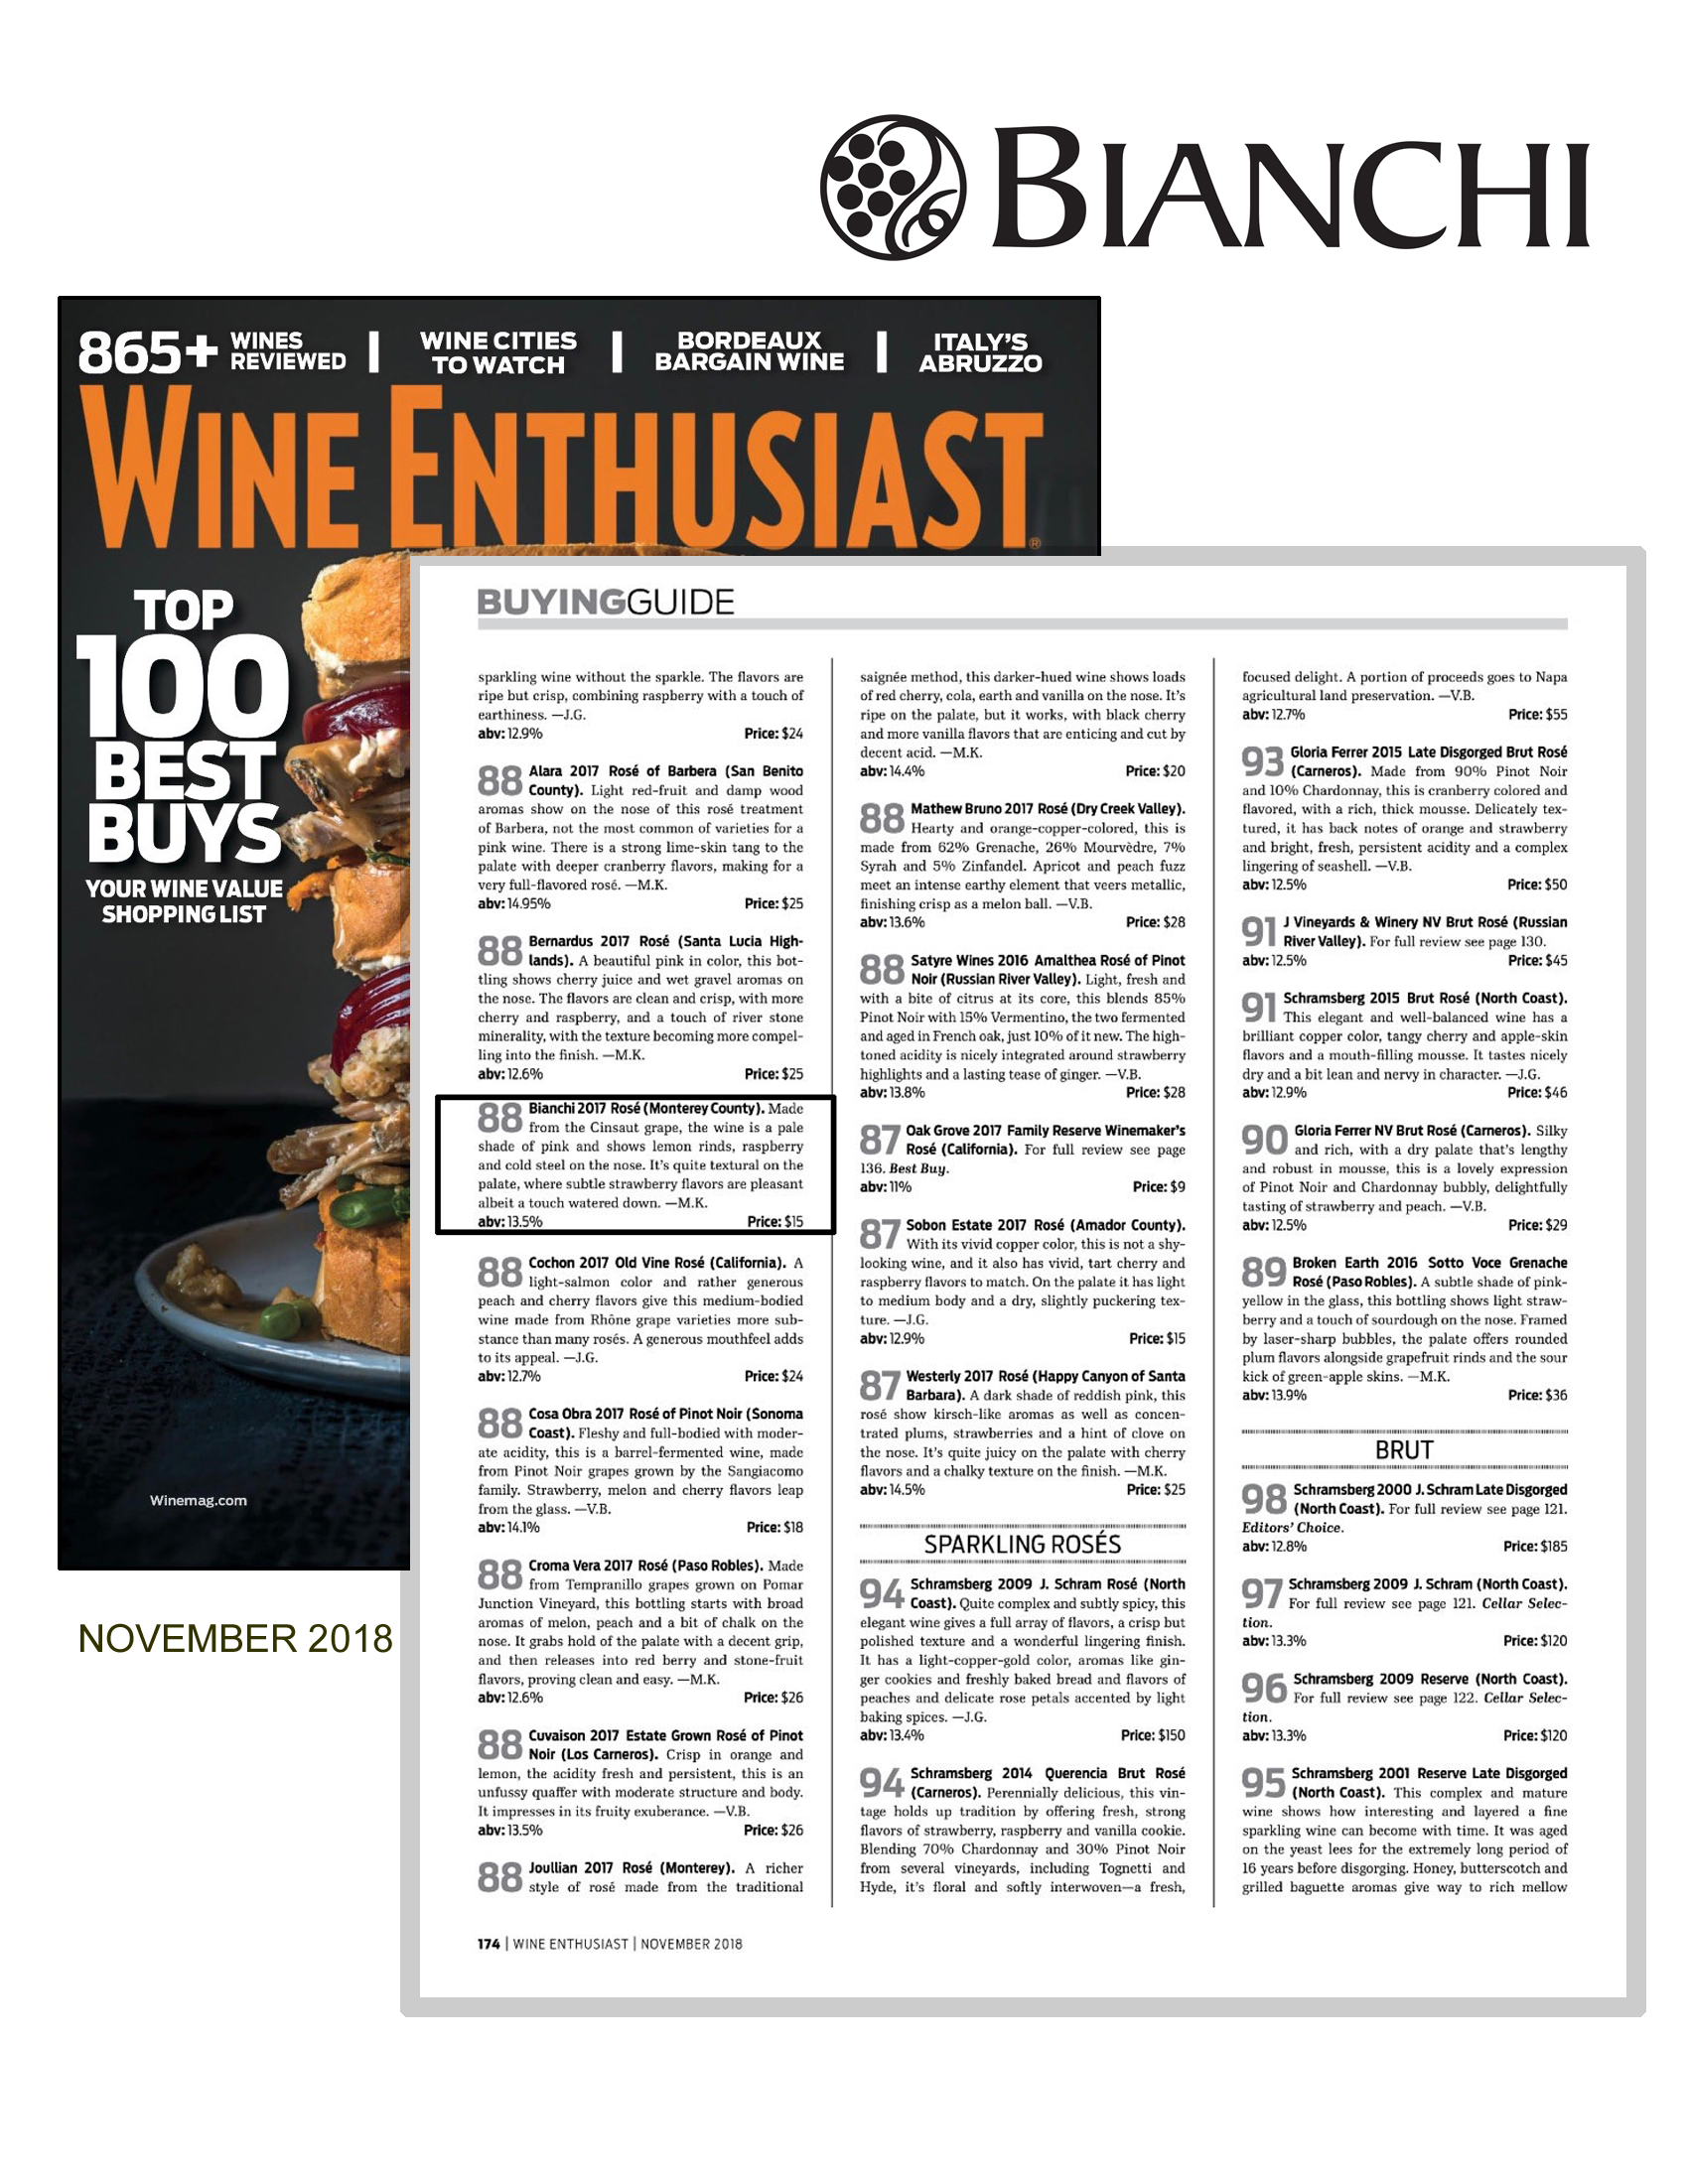 WINEENTHUSIAST_ROSE_NOV2018.jpg